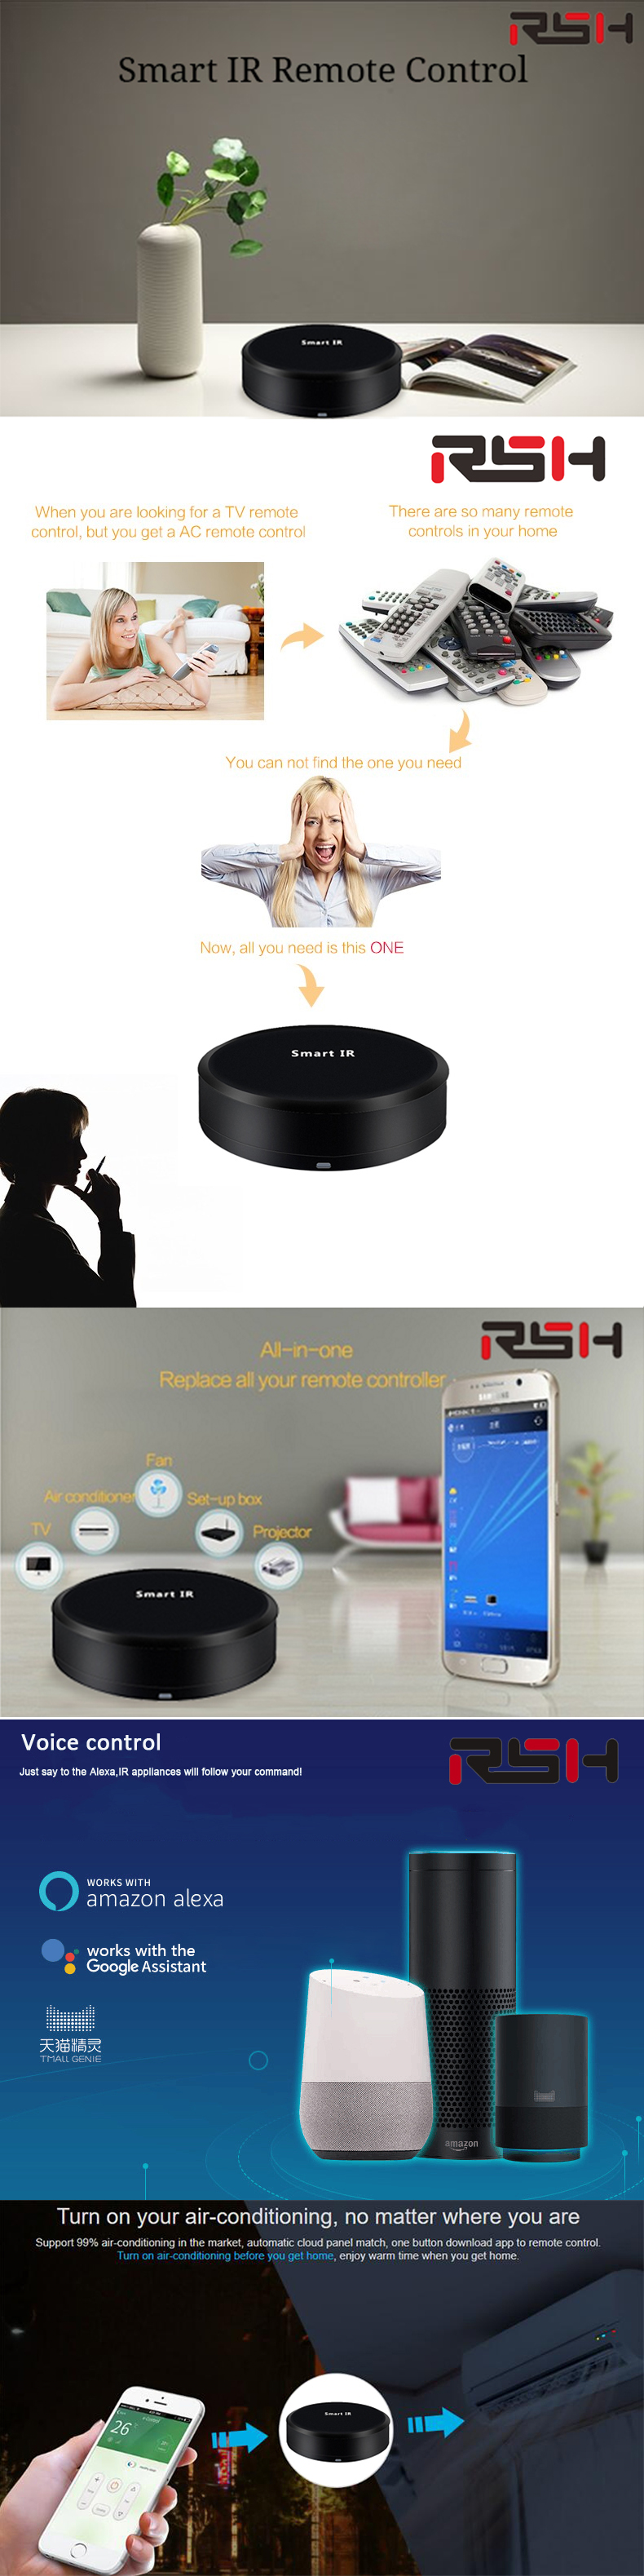 US $39 99 |RSH IR01 Universal Intelligent Smart Remote Controller WIFI+IR  Switch 360degree Smart Home Automation smart sensor-in Remote Controls from